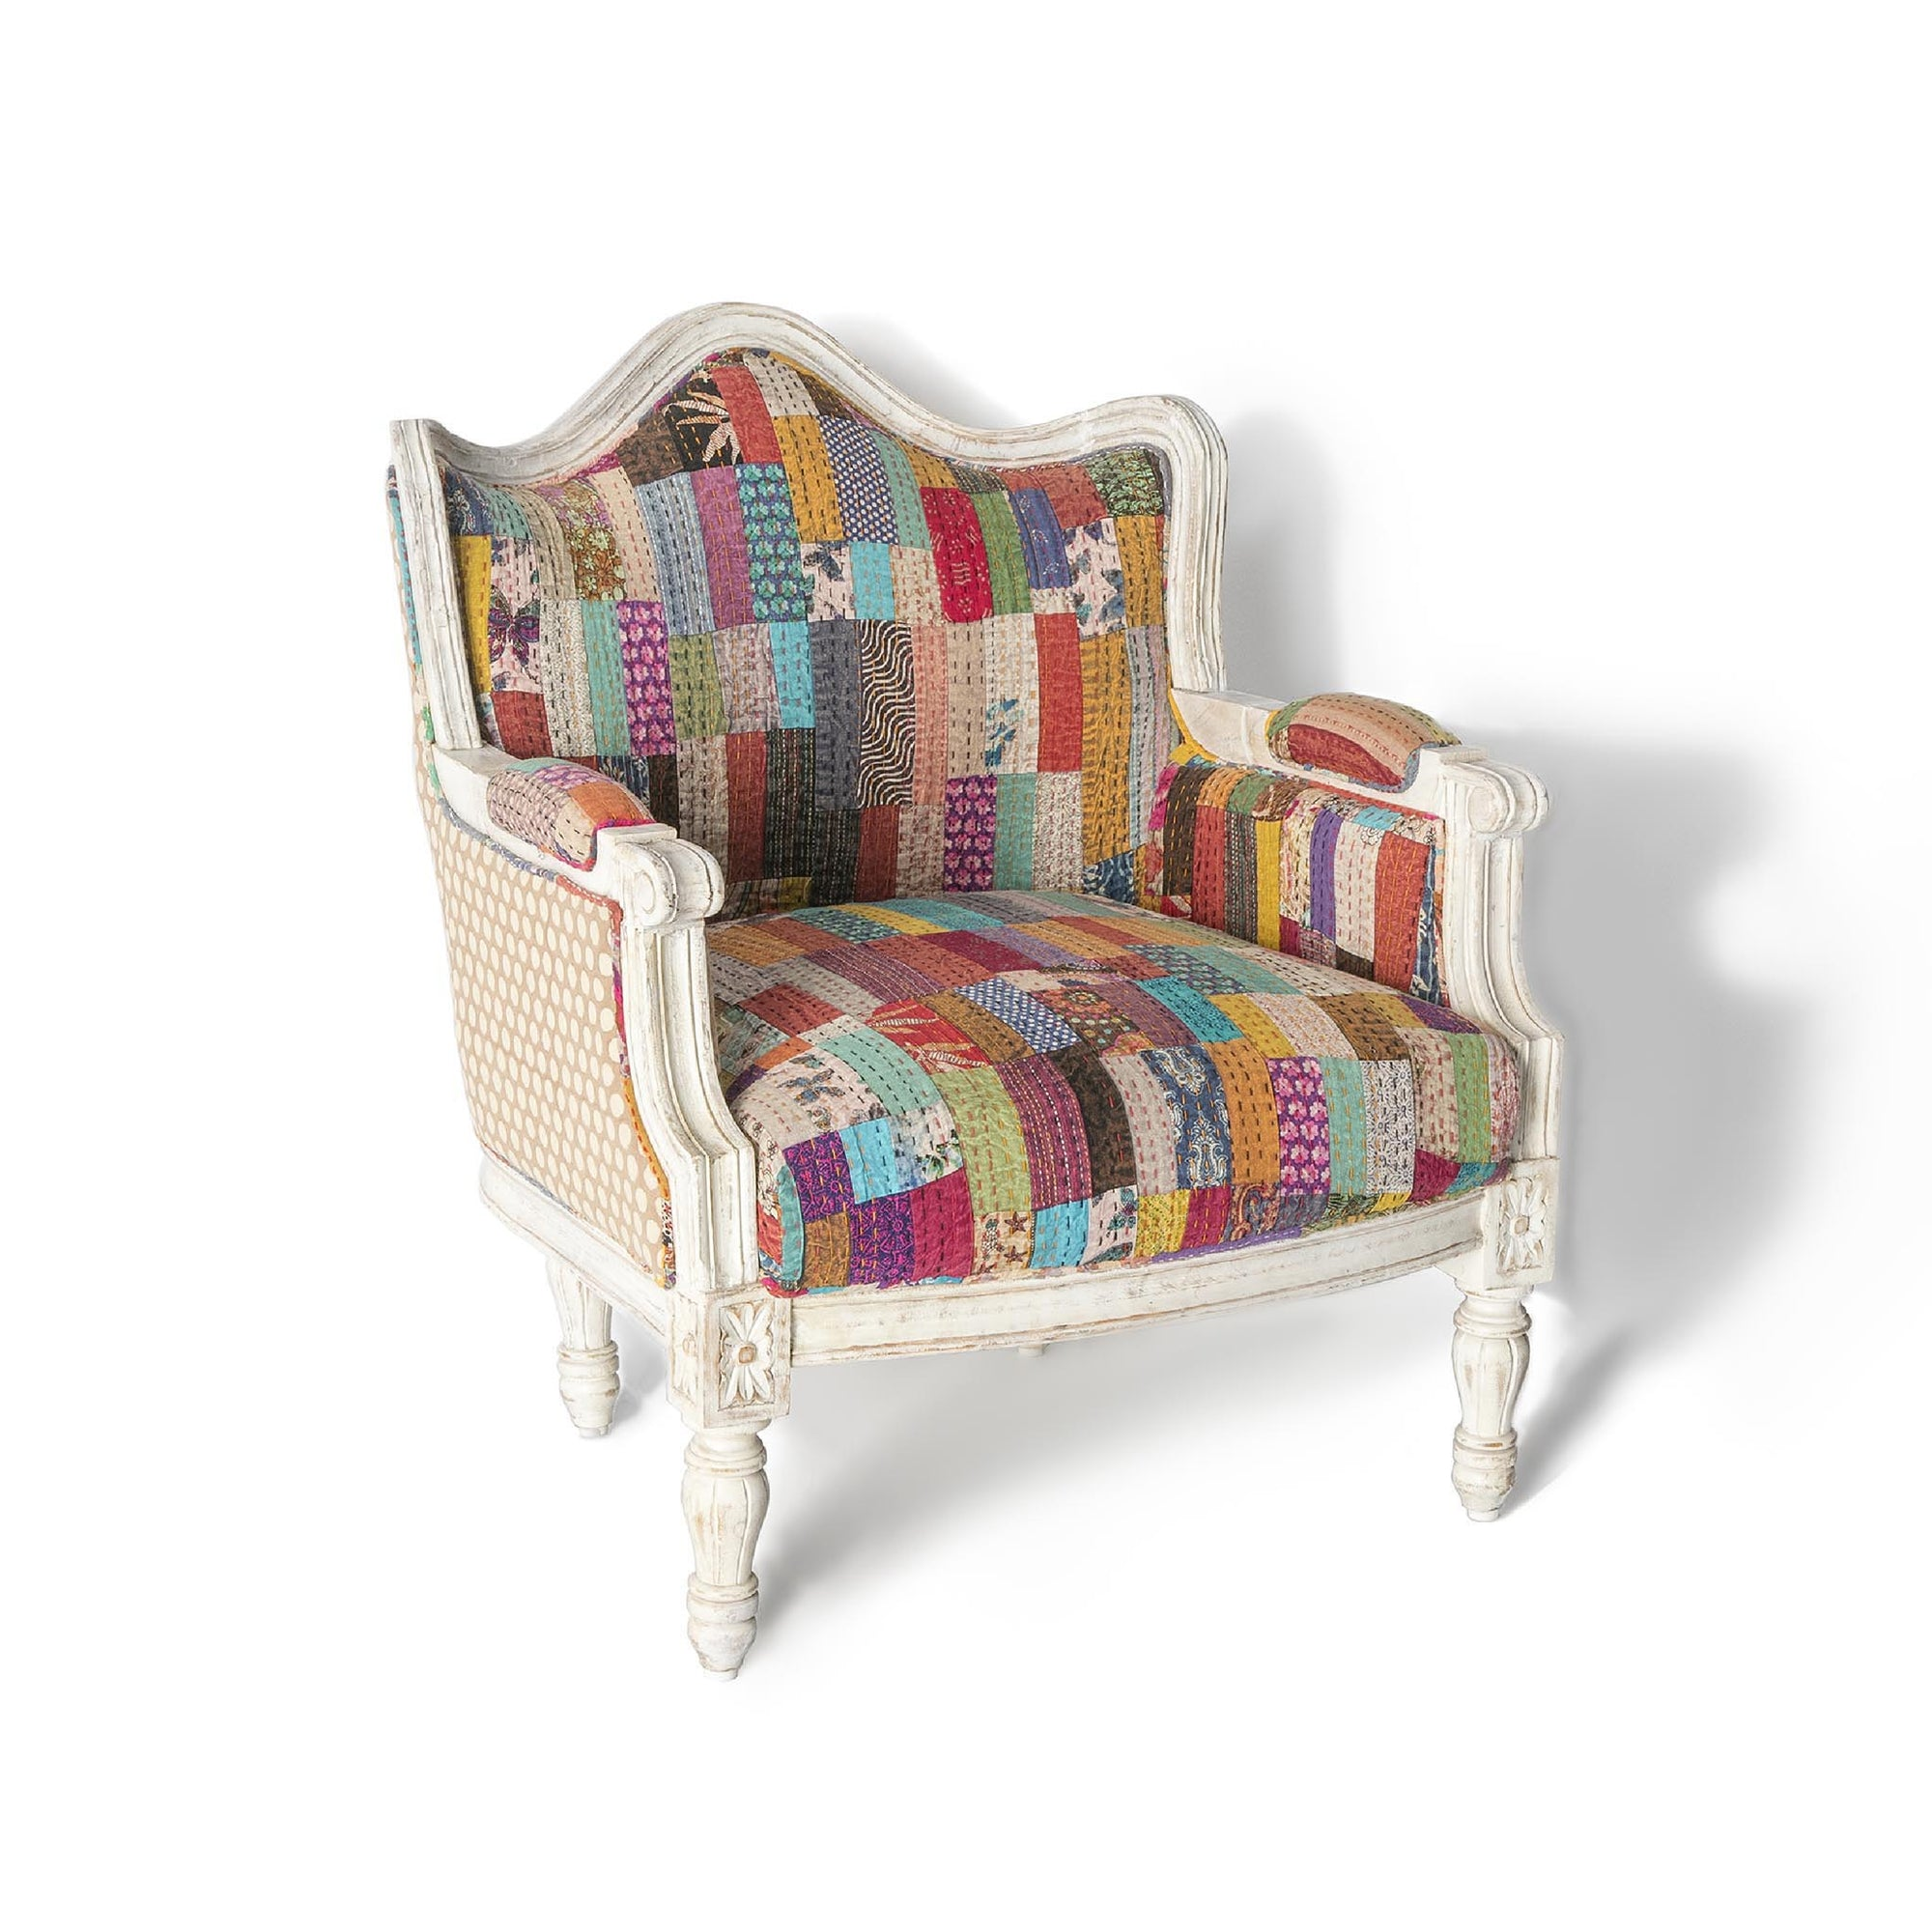 Kantha white framed chair with a vibrant patchwork patterned fabric by Roseland Furniture